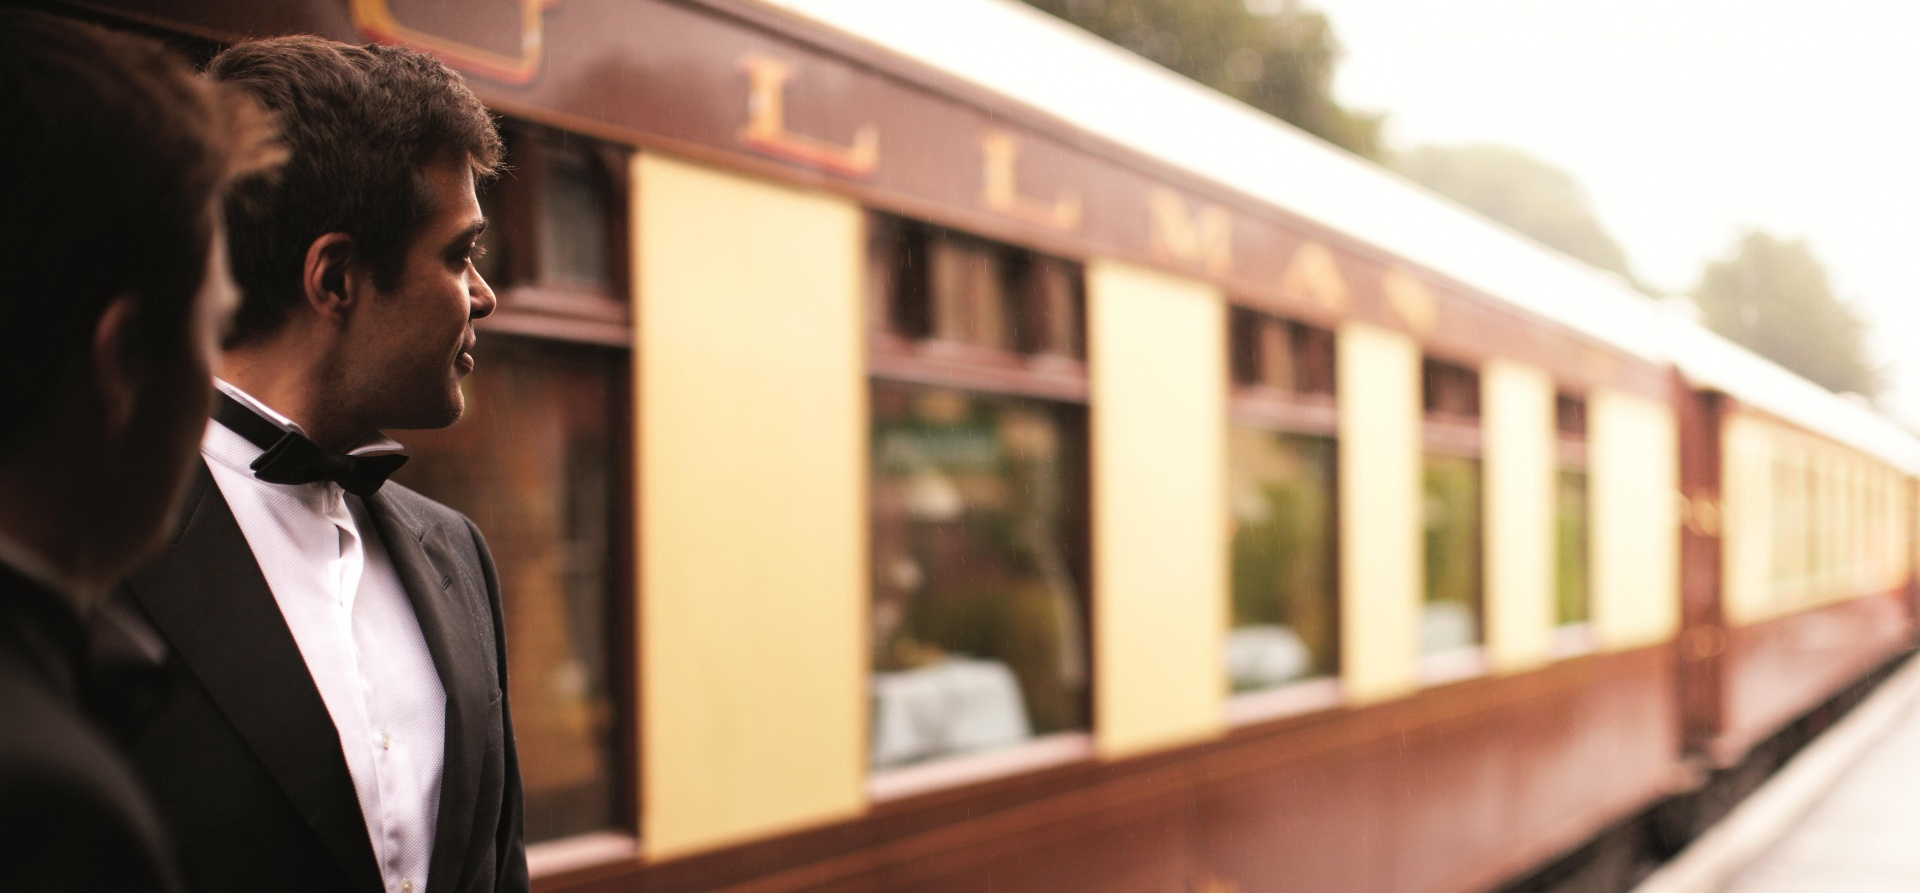 Day Excursions Aboard The Belmond British Pullman-9